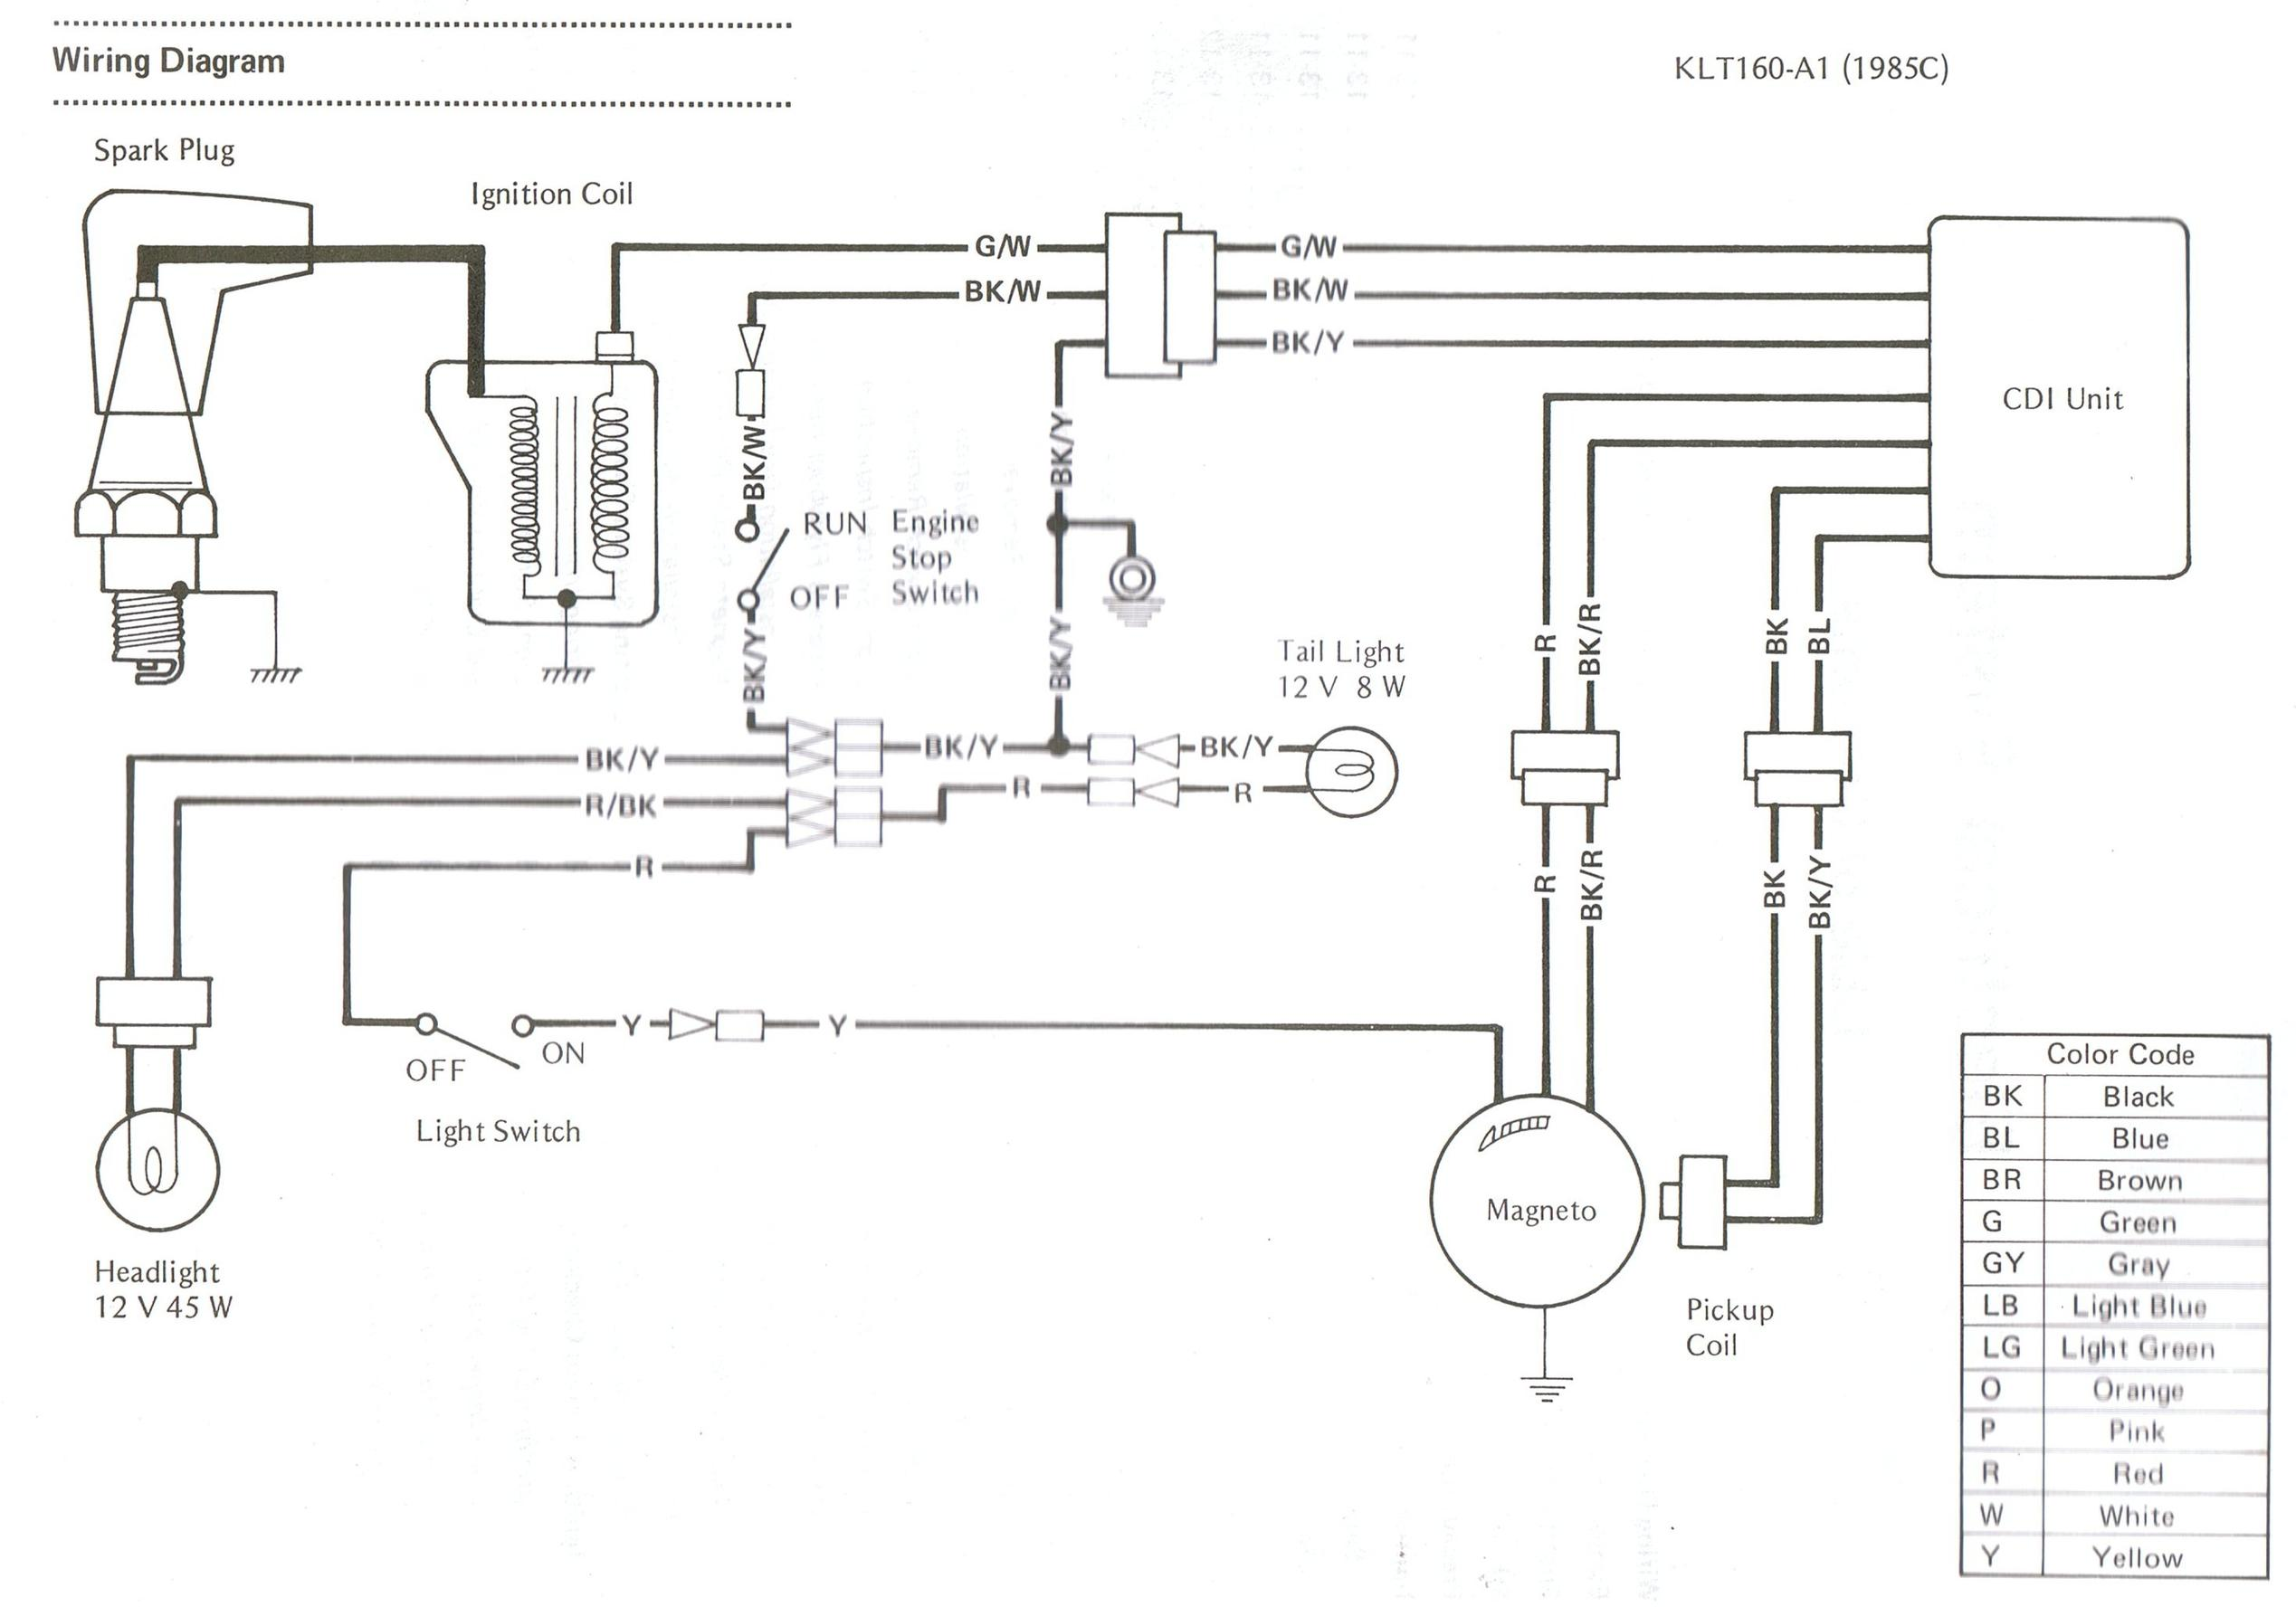 Polaris 600 Xlt Engine Diagram Data Wiring Diagrams Maserati Parts Online Free Image Specs 1995